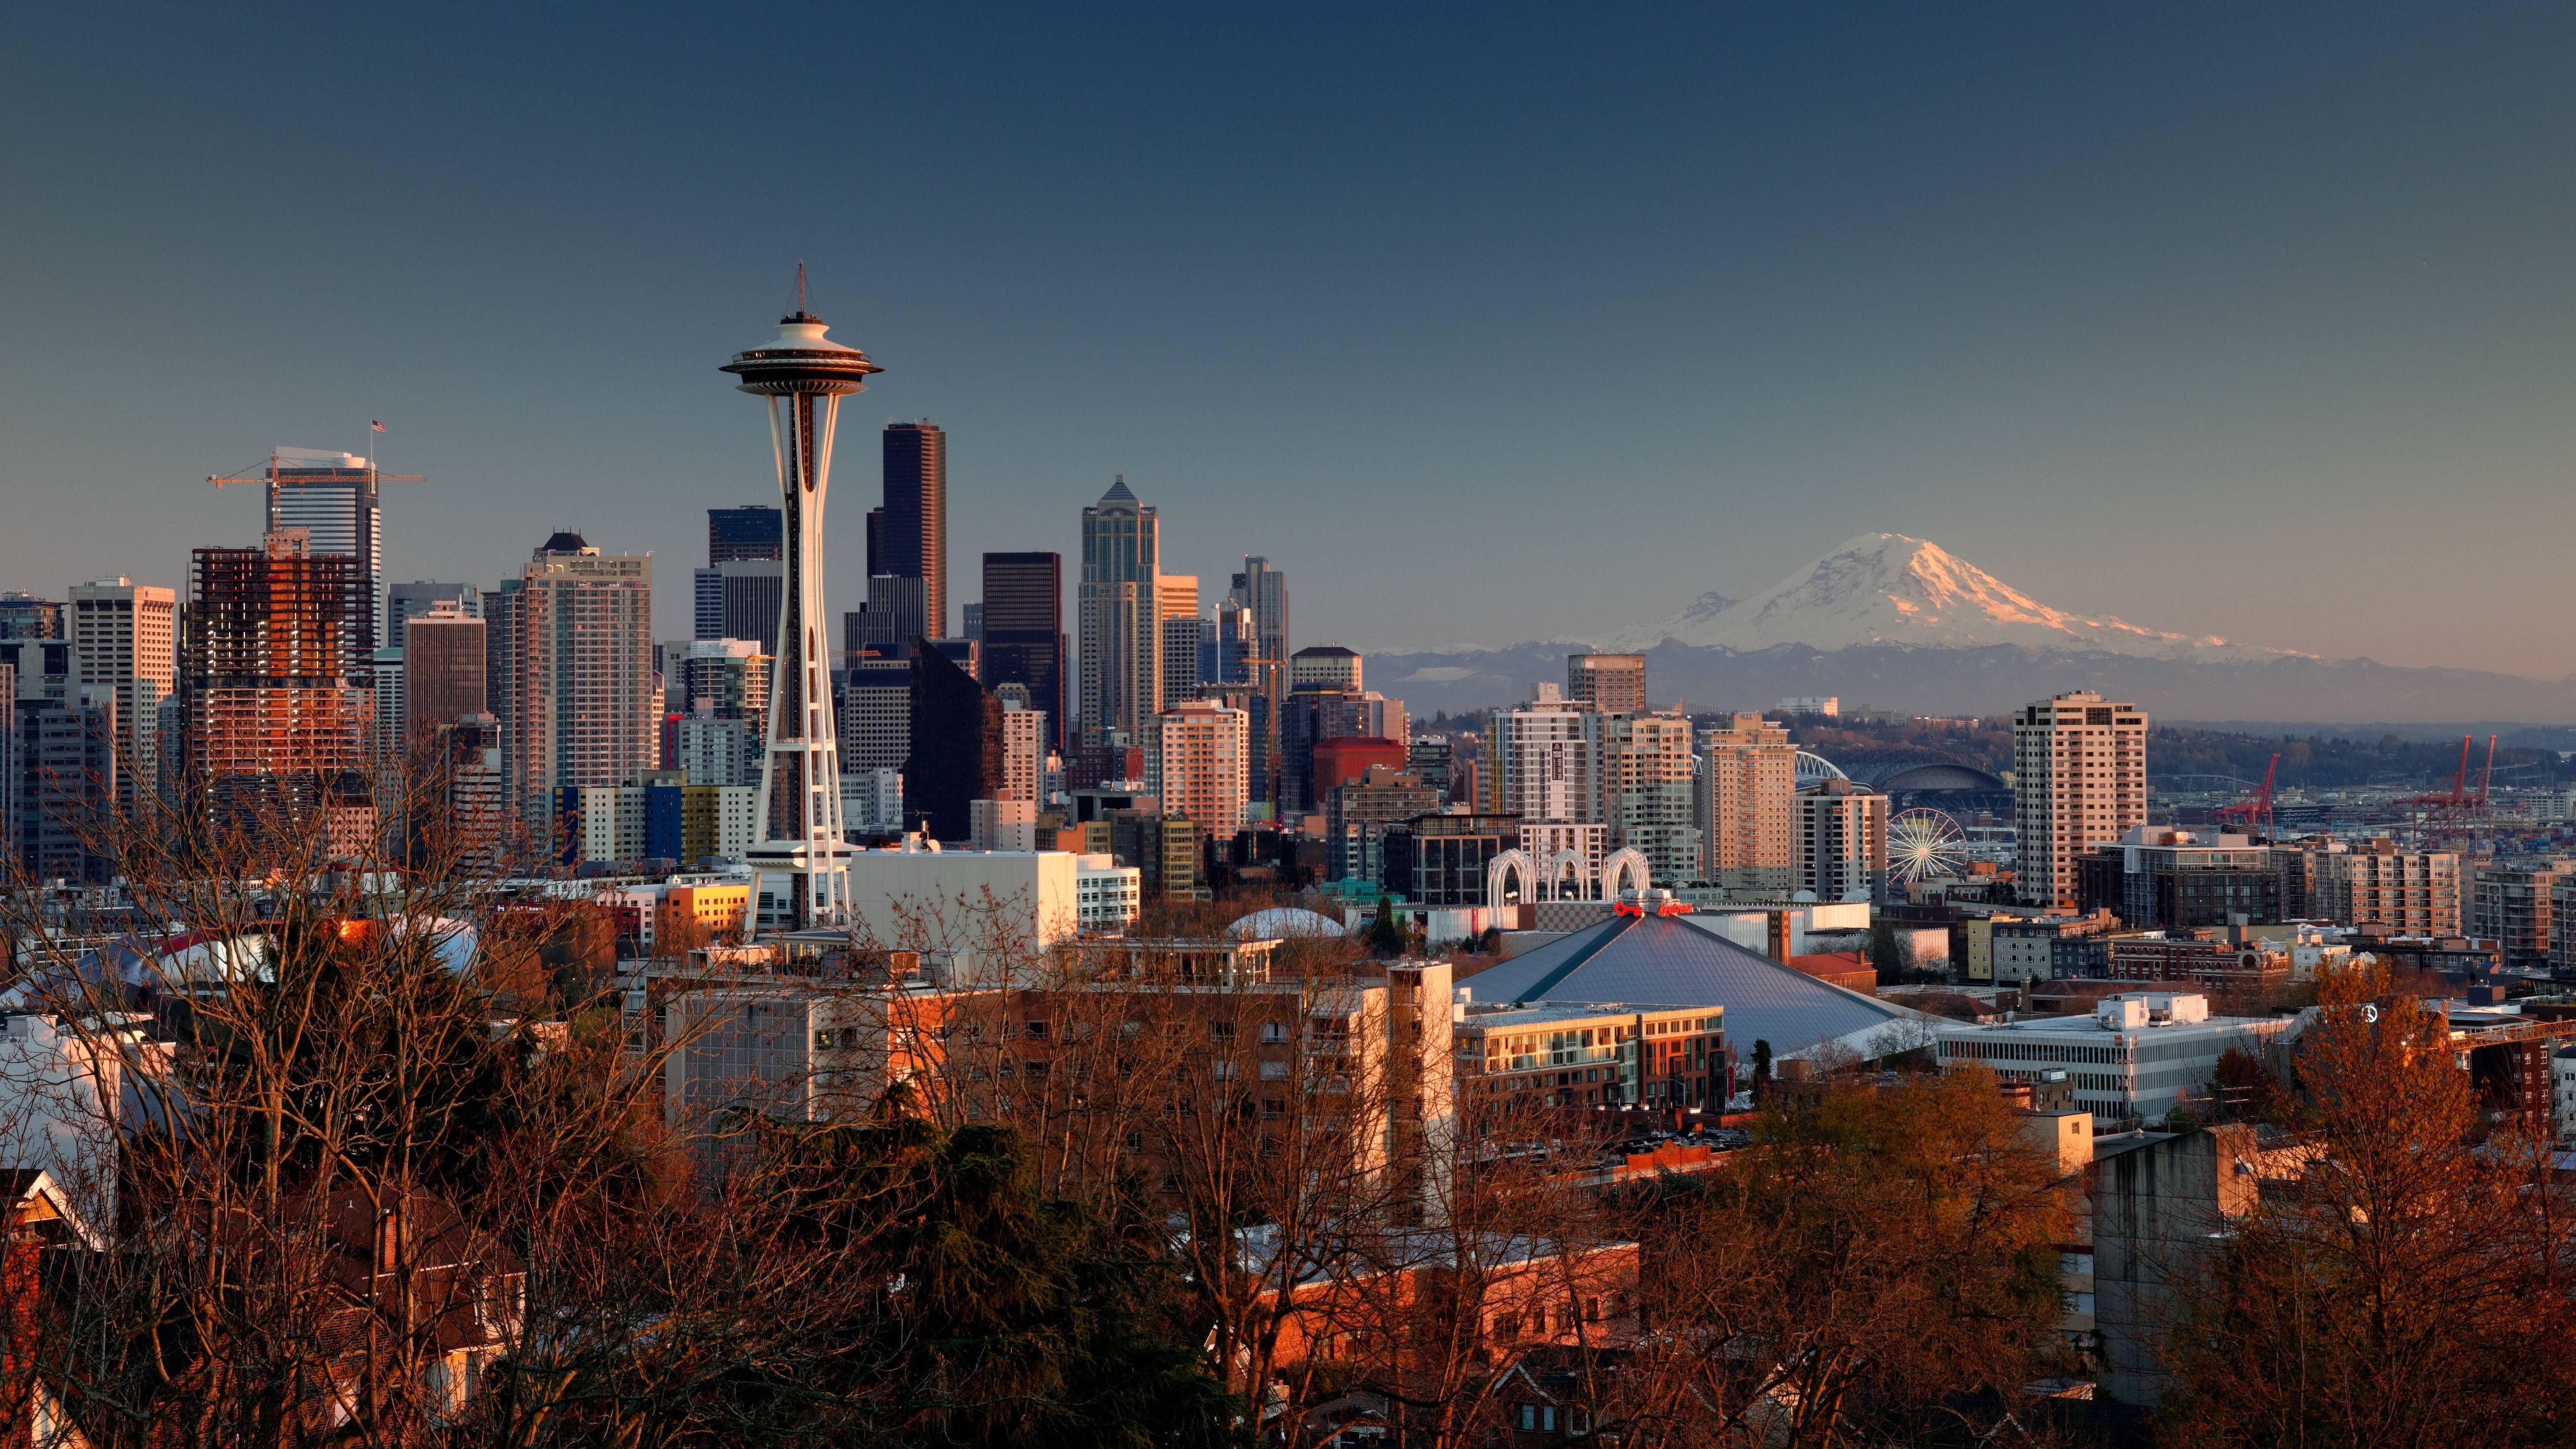 100 1920x1080 Wallpapers Seattle Wallpaper Visit Seattle Seattle Pictures